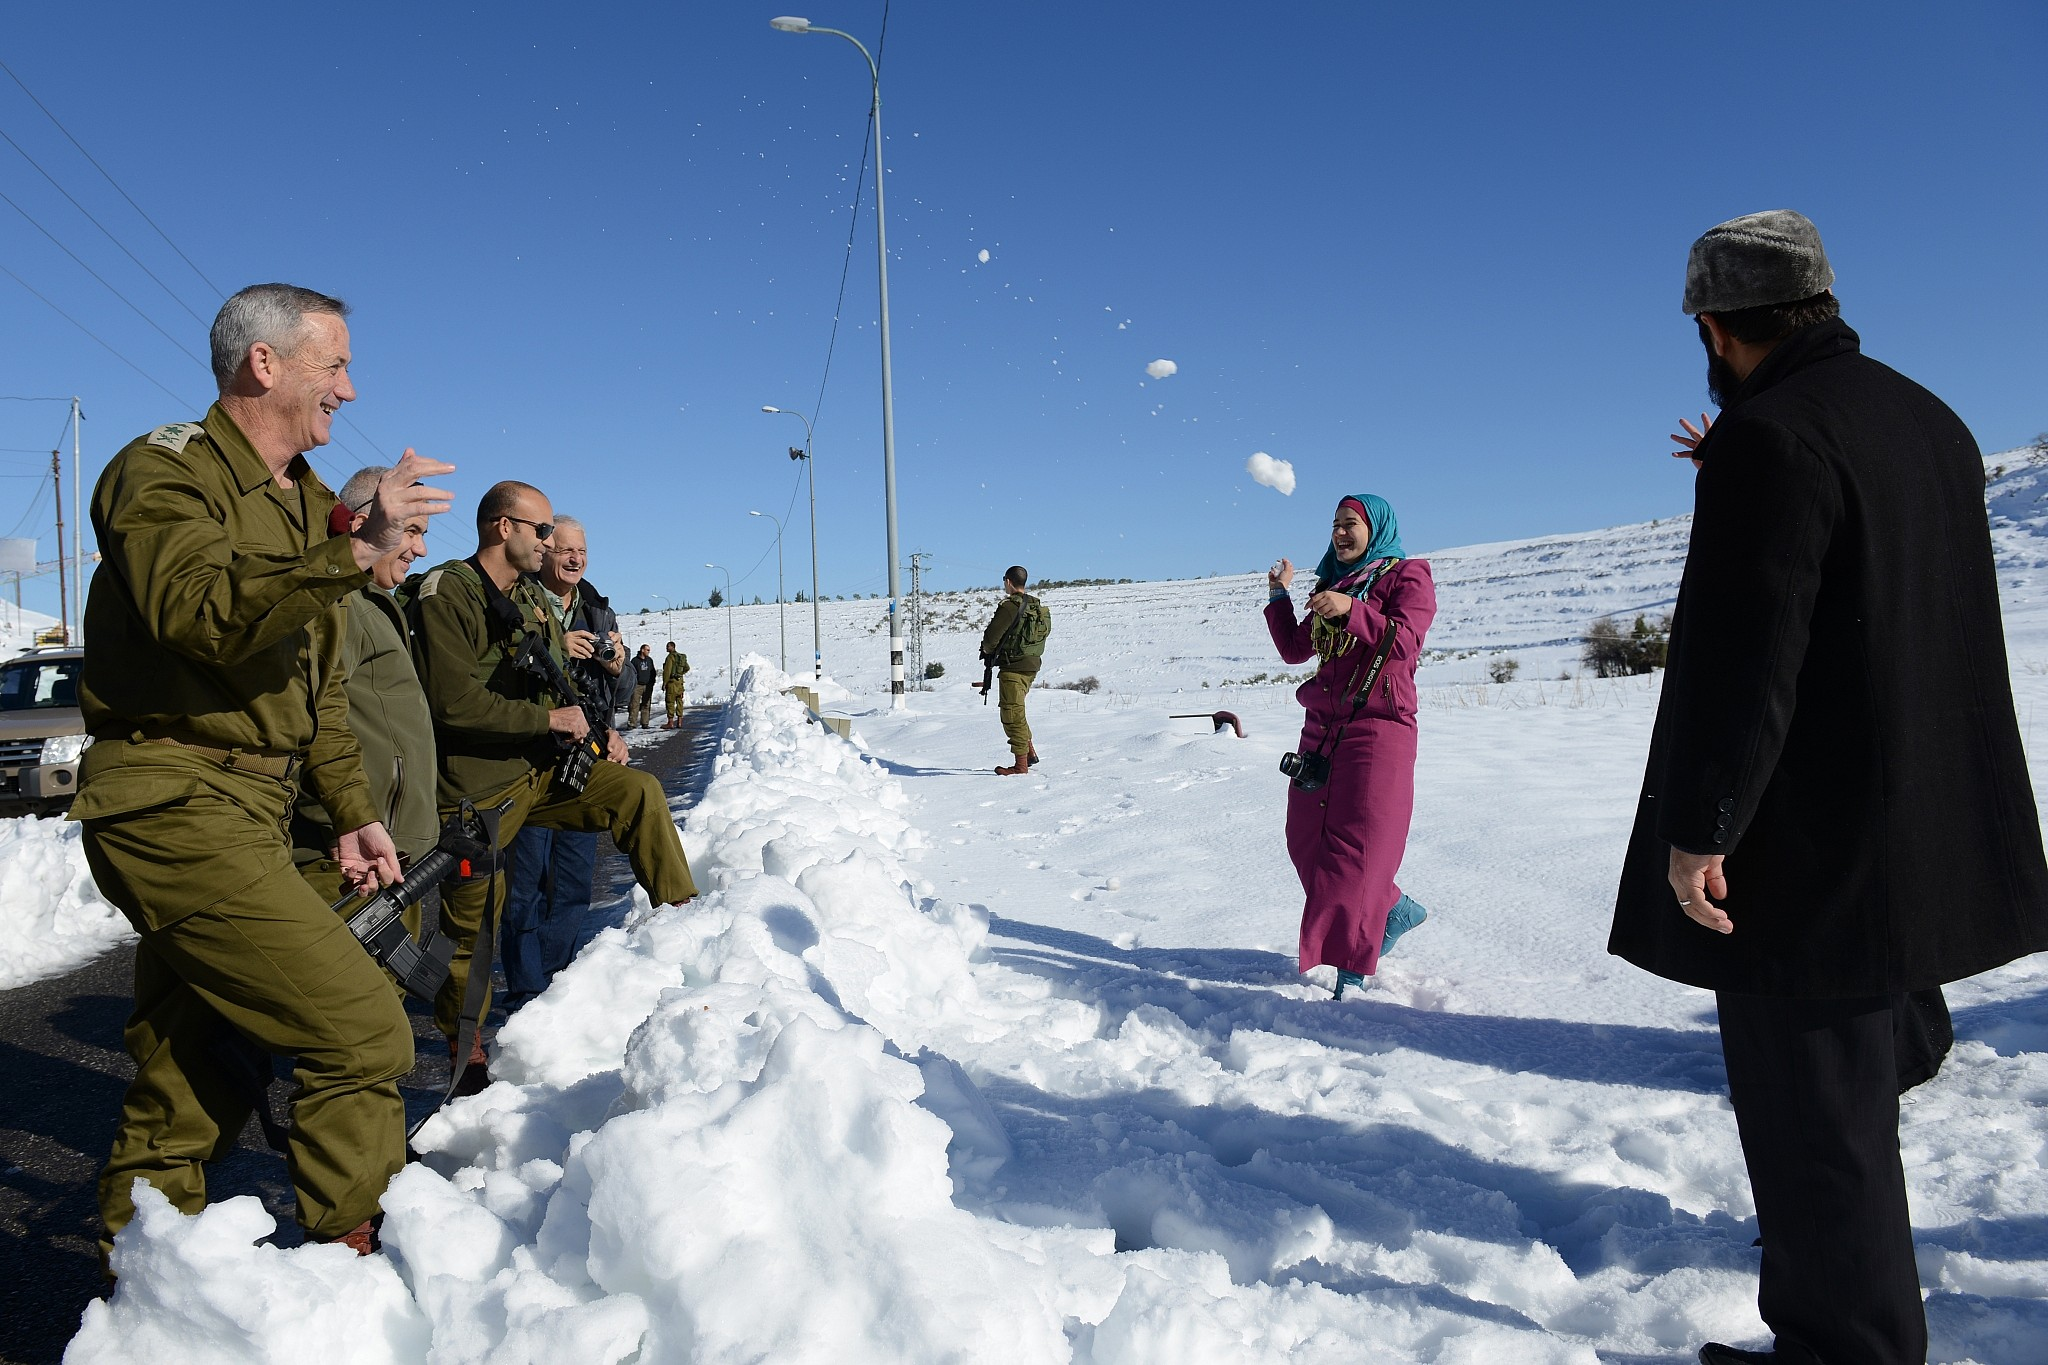 Then-IDF chief of staff Benny Gantz has a snowball fight with a family of Palestinians along the West Bank's Route 60 highway on December 15, 2013. (Judah Ari Gross/Israel Defense Forces)